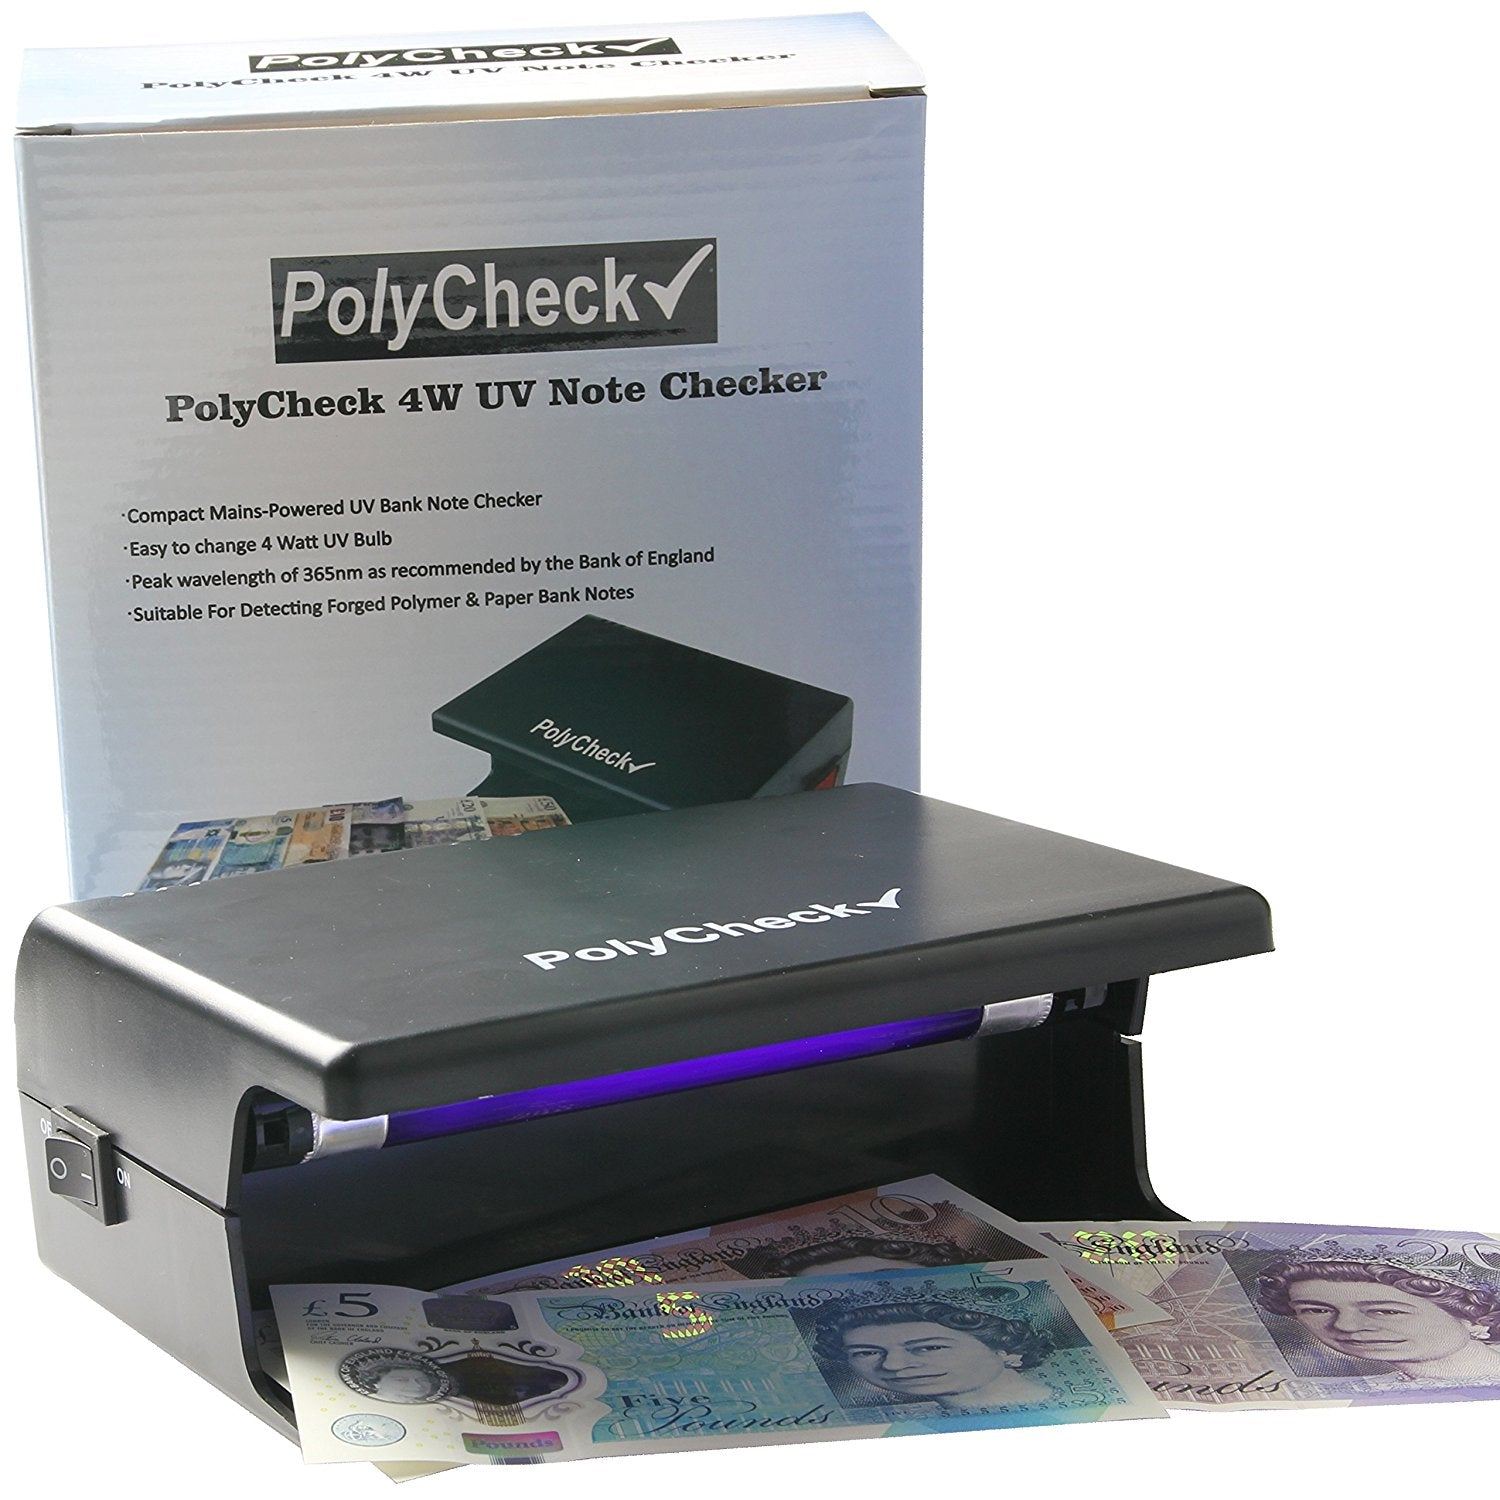 2 Hoek 2 Bank.Polycheck 4w Uv Note Checker With 2 Spare Durabulb Bulbs Detects